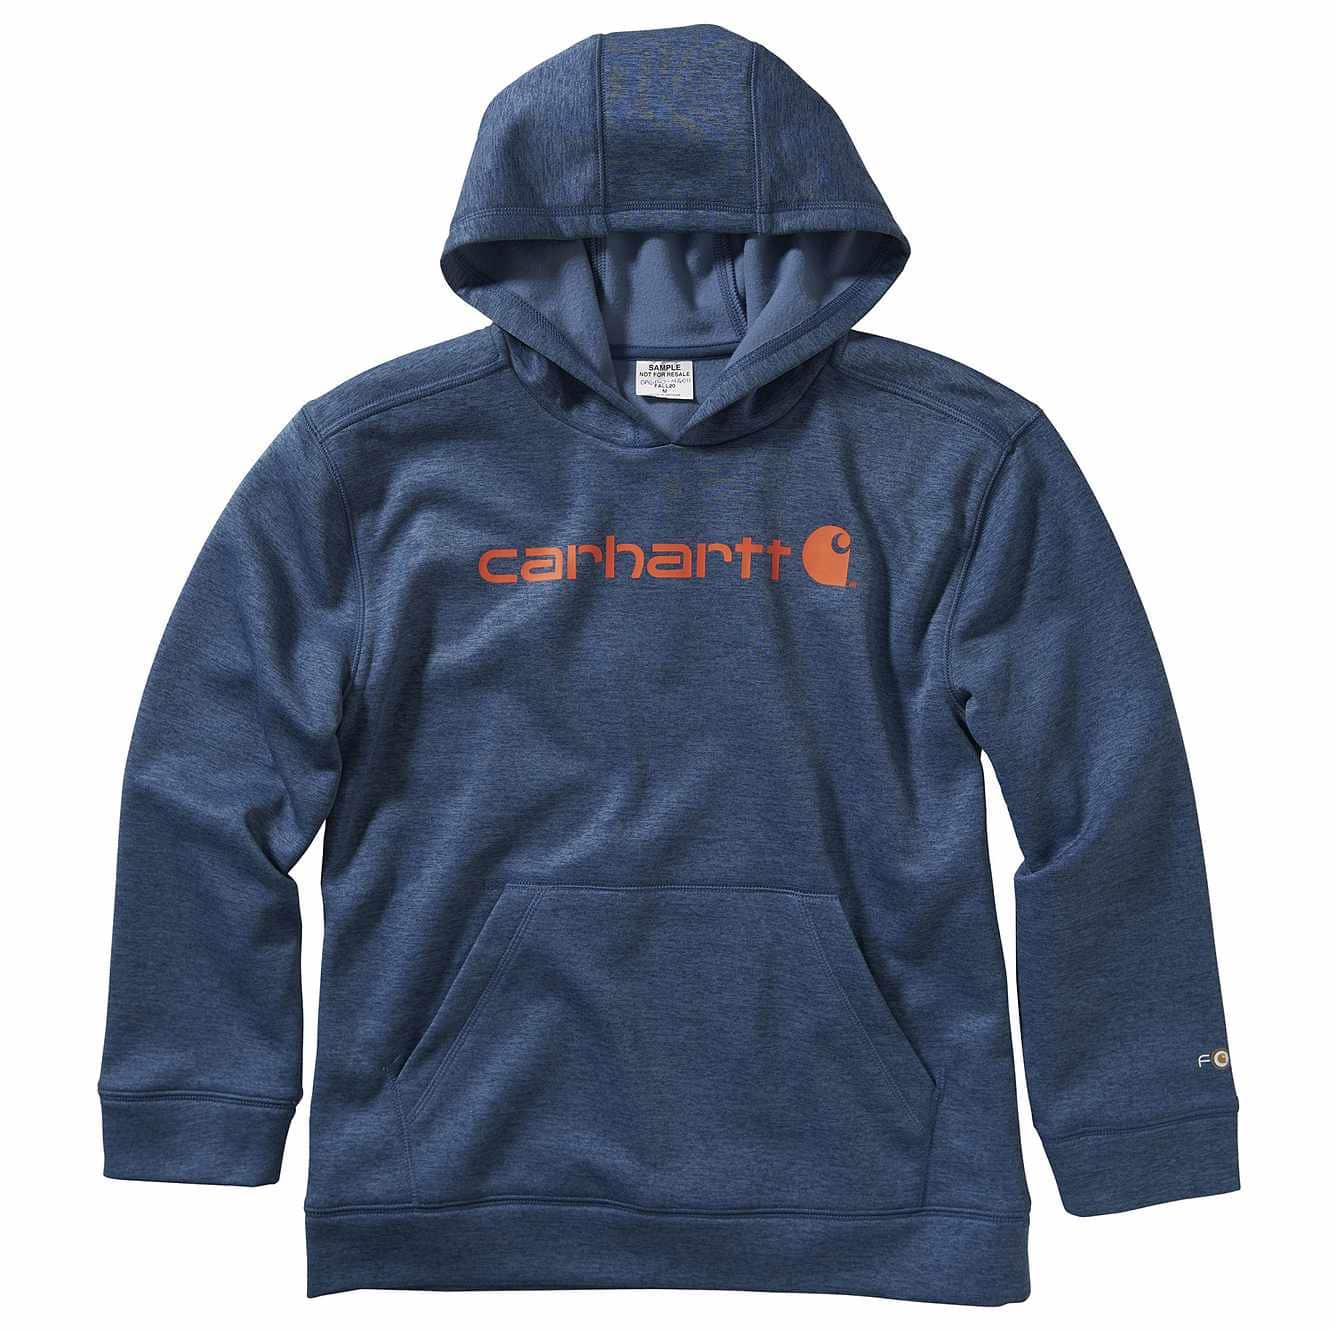 Picture of Long Sleeve Force Signature Sweatshirt in Dark Denim Heather